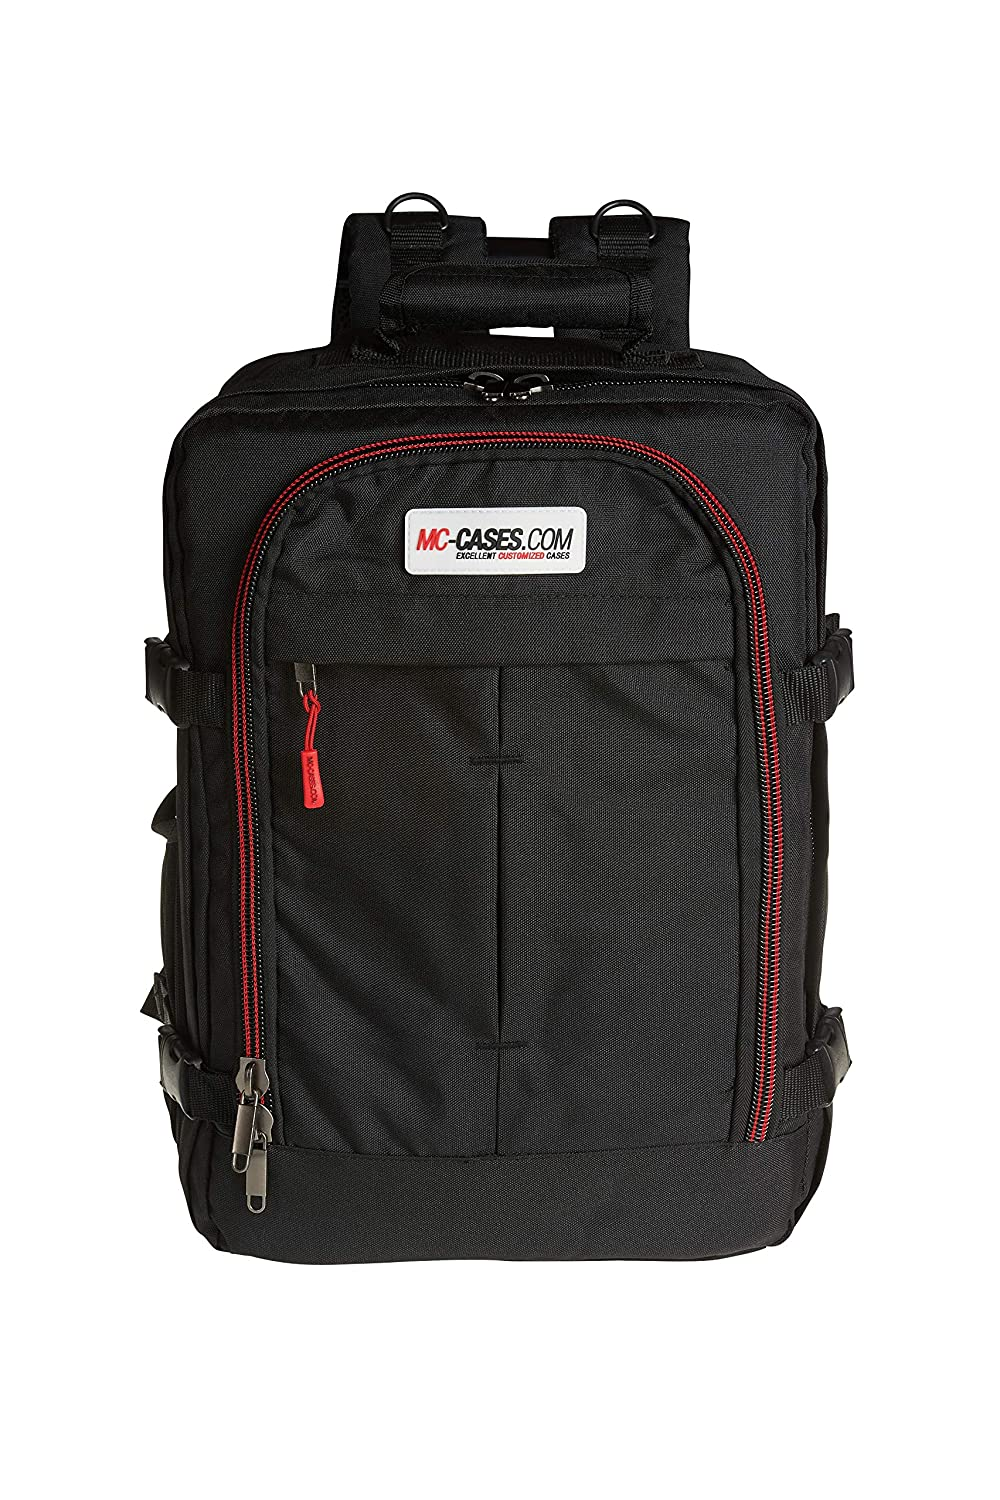 0deac2bd24a8 Amazon.com  MC-CASES Backpack for DJI Ronin S - 3 Axes Adjustable - Made in  Germany  Electronics